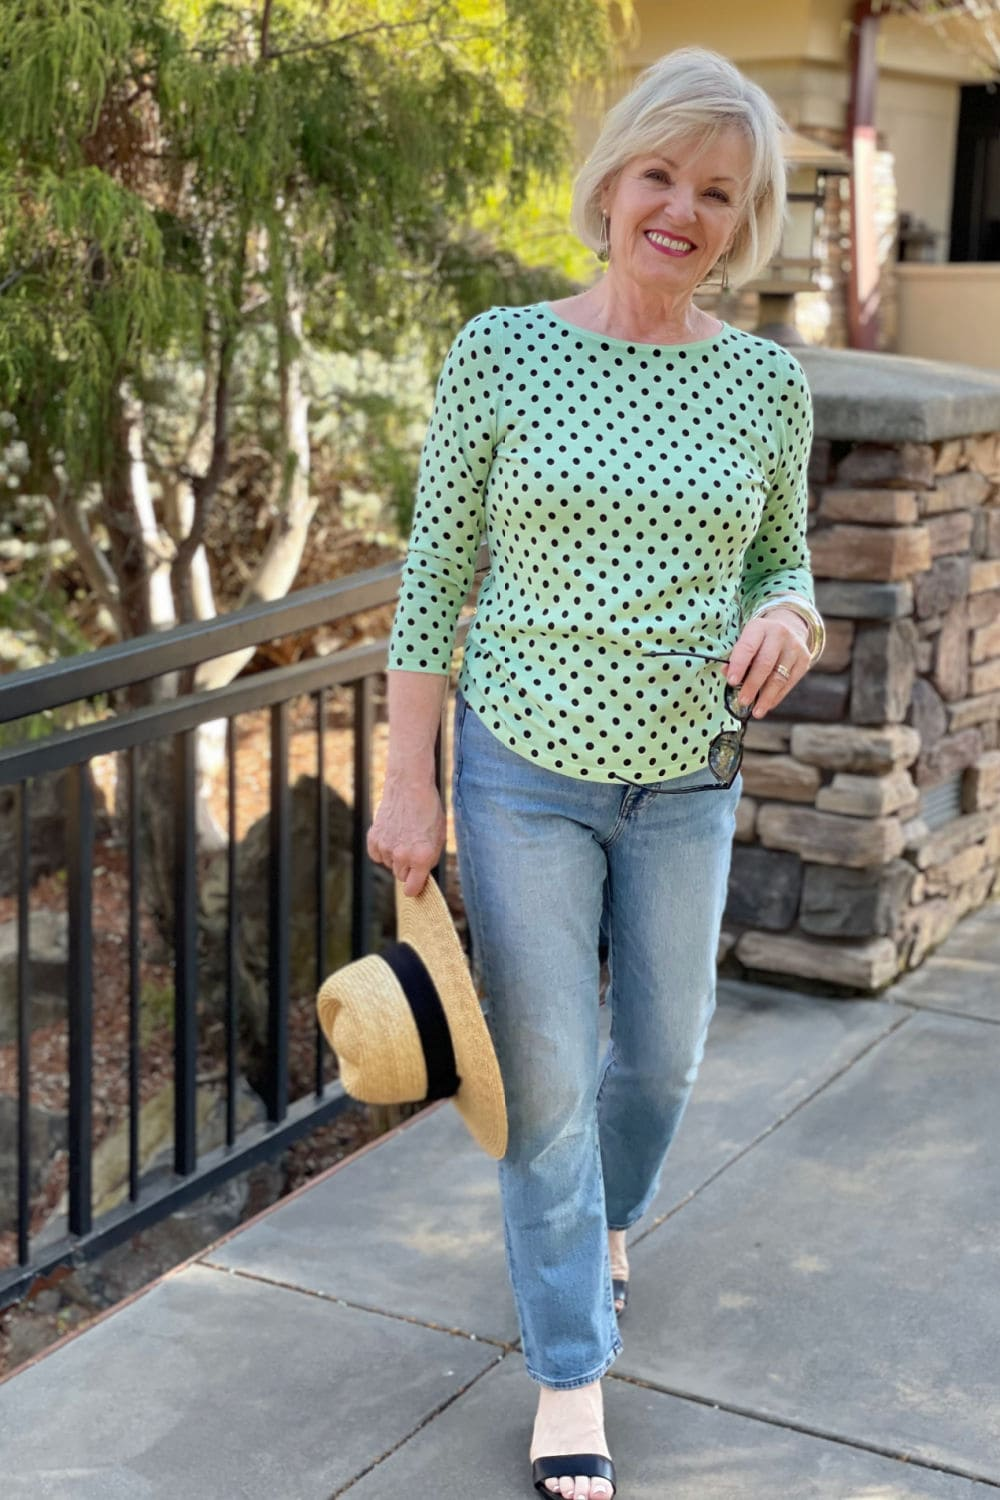 woman walking near fountain wearing green sweater and blue jeans